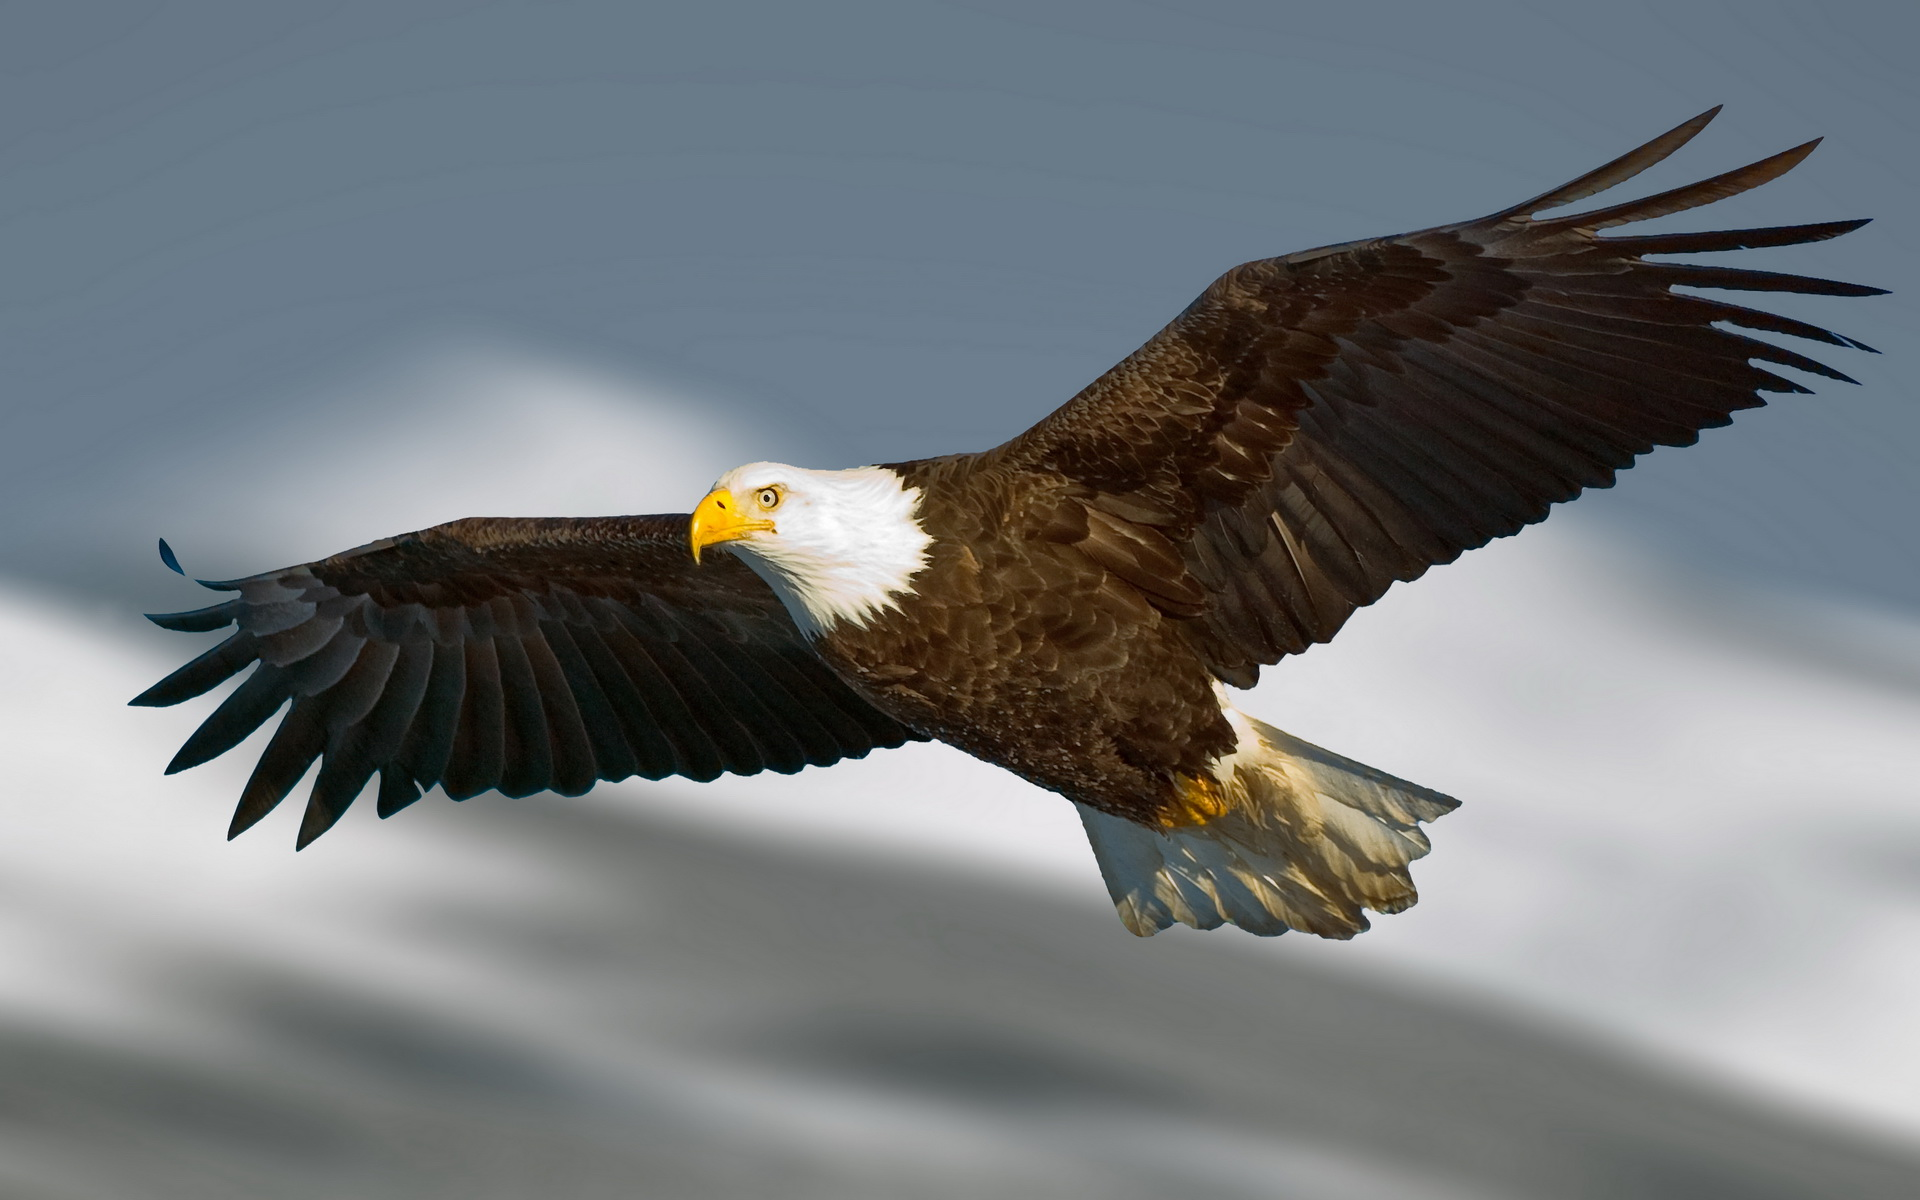 Bald Eagle HD Wallpaper Background Image